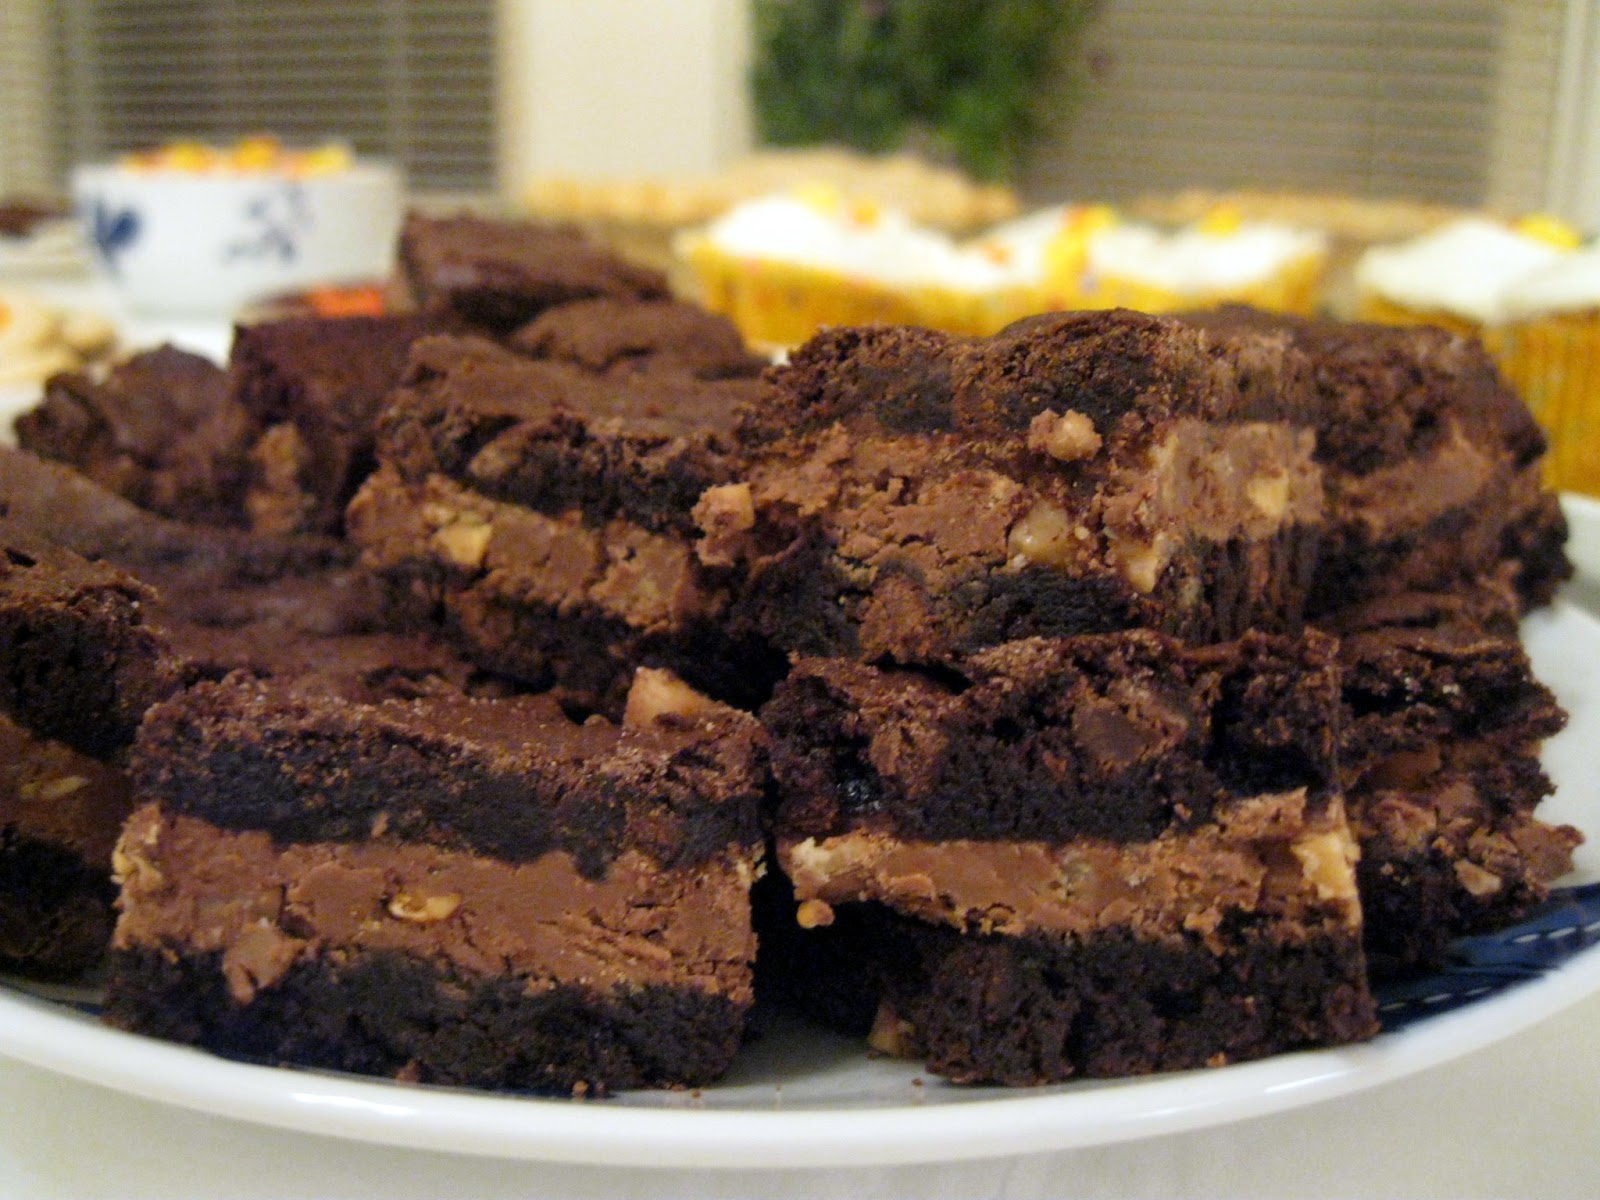 Plate Of Brownies Symphony bar brownies with